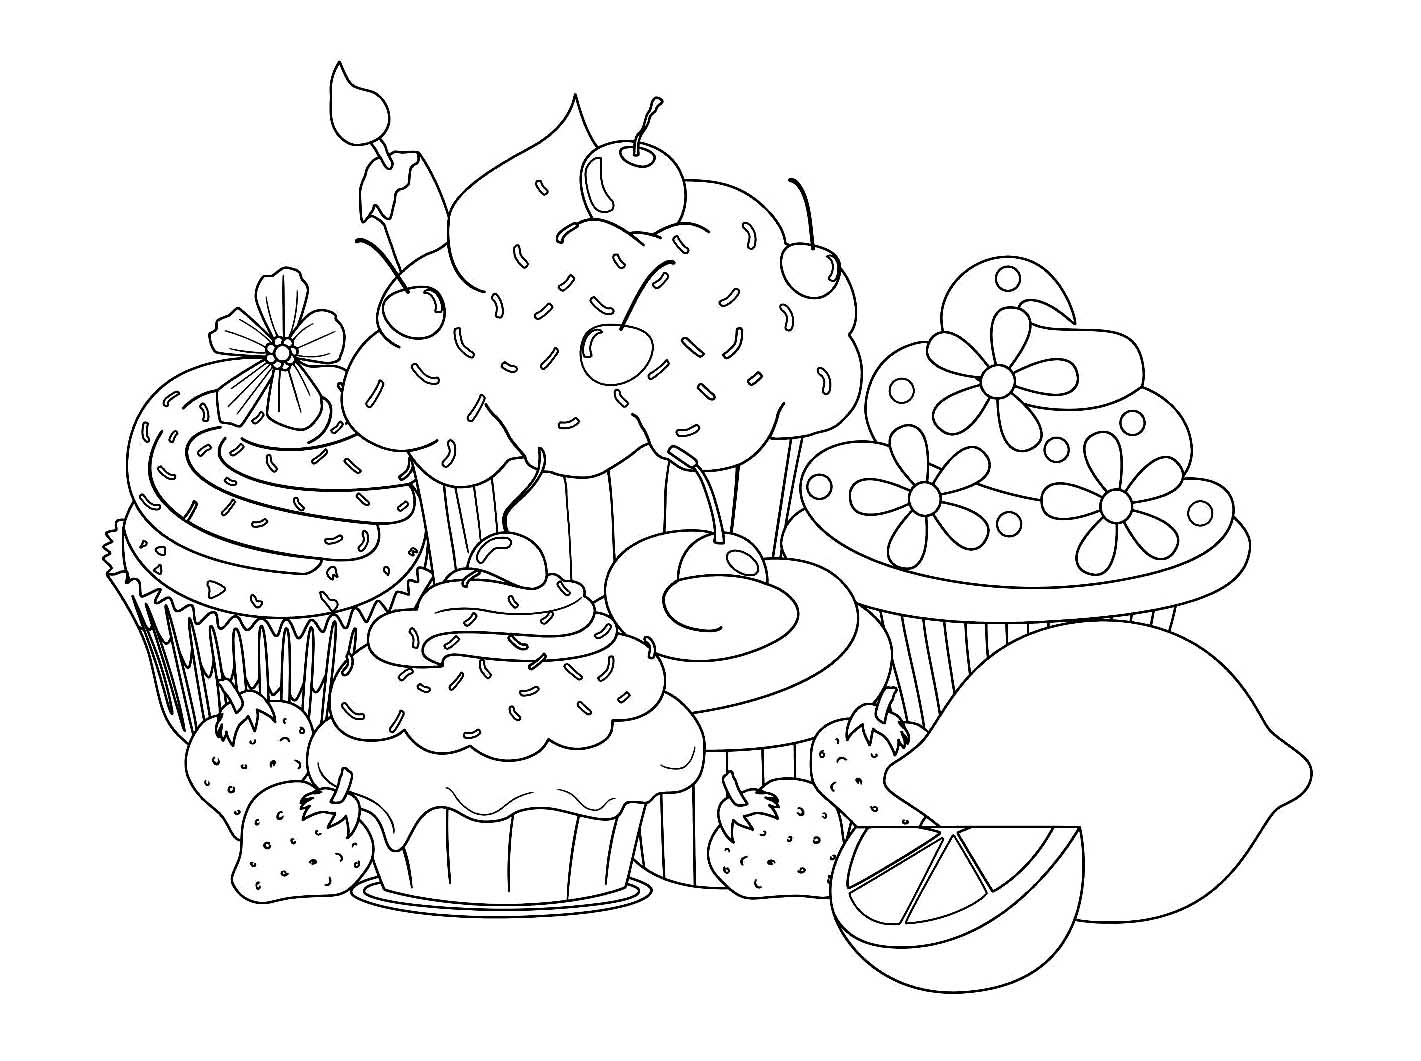 coloring pages pretty cupcakes dudeindisneycom - Coloring Pages Pretty Cupcakes